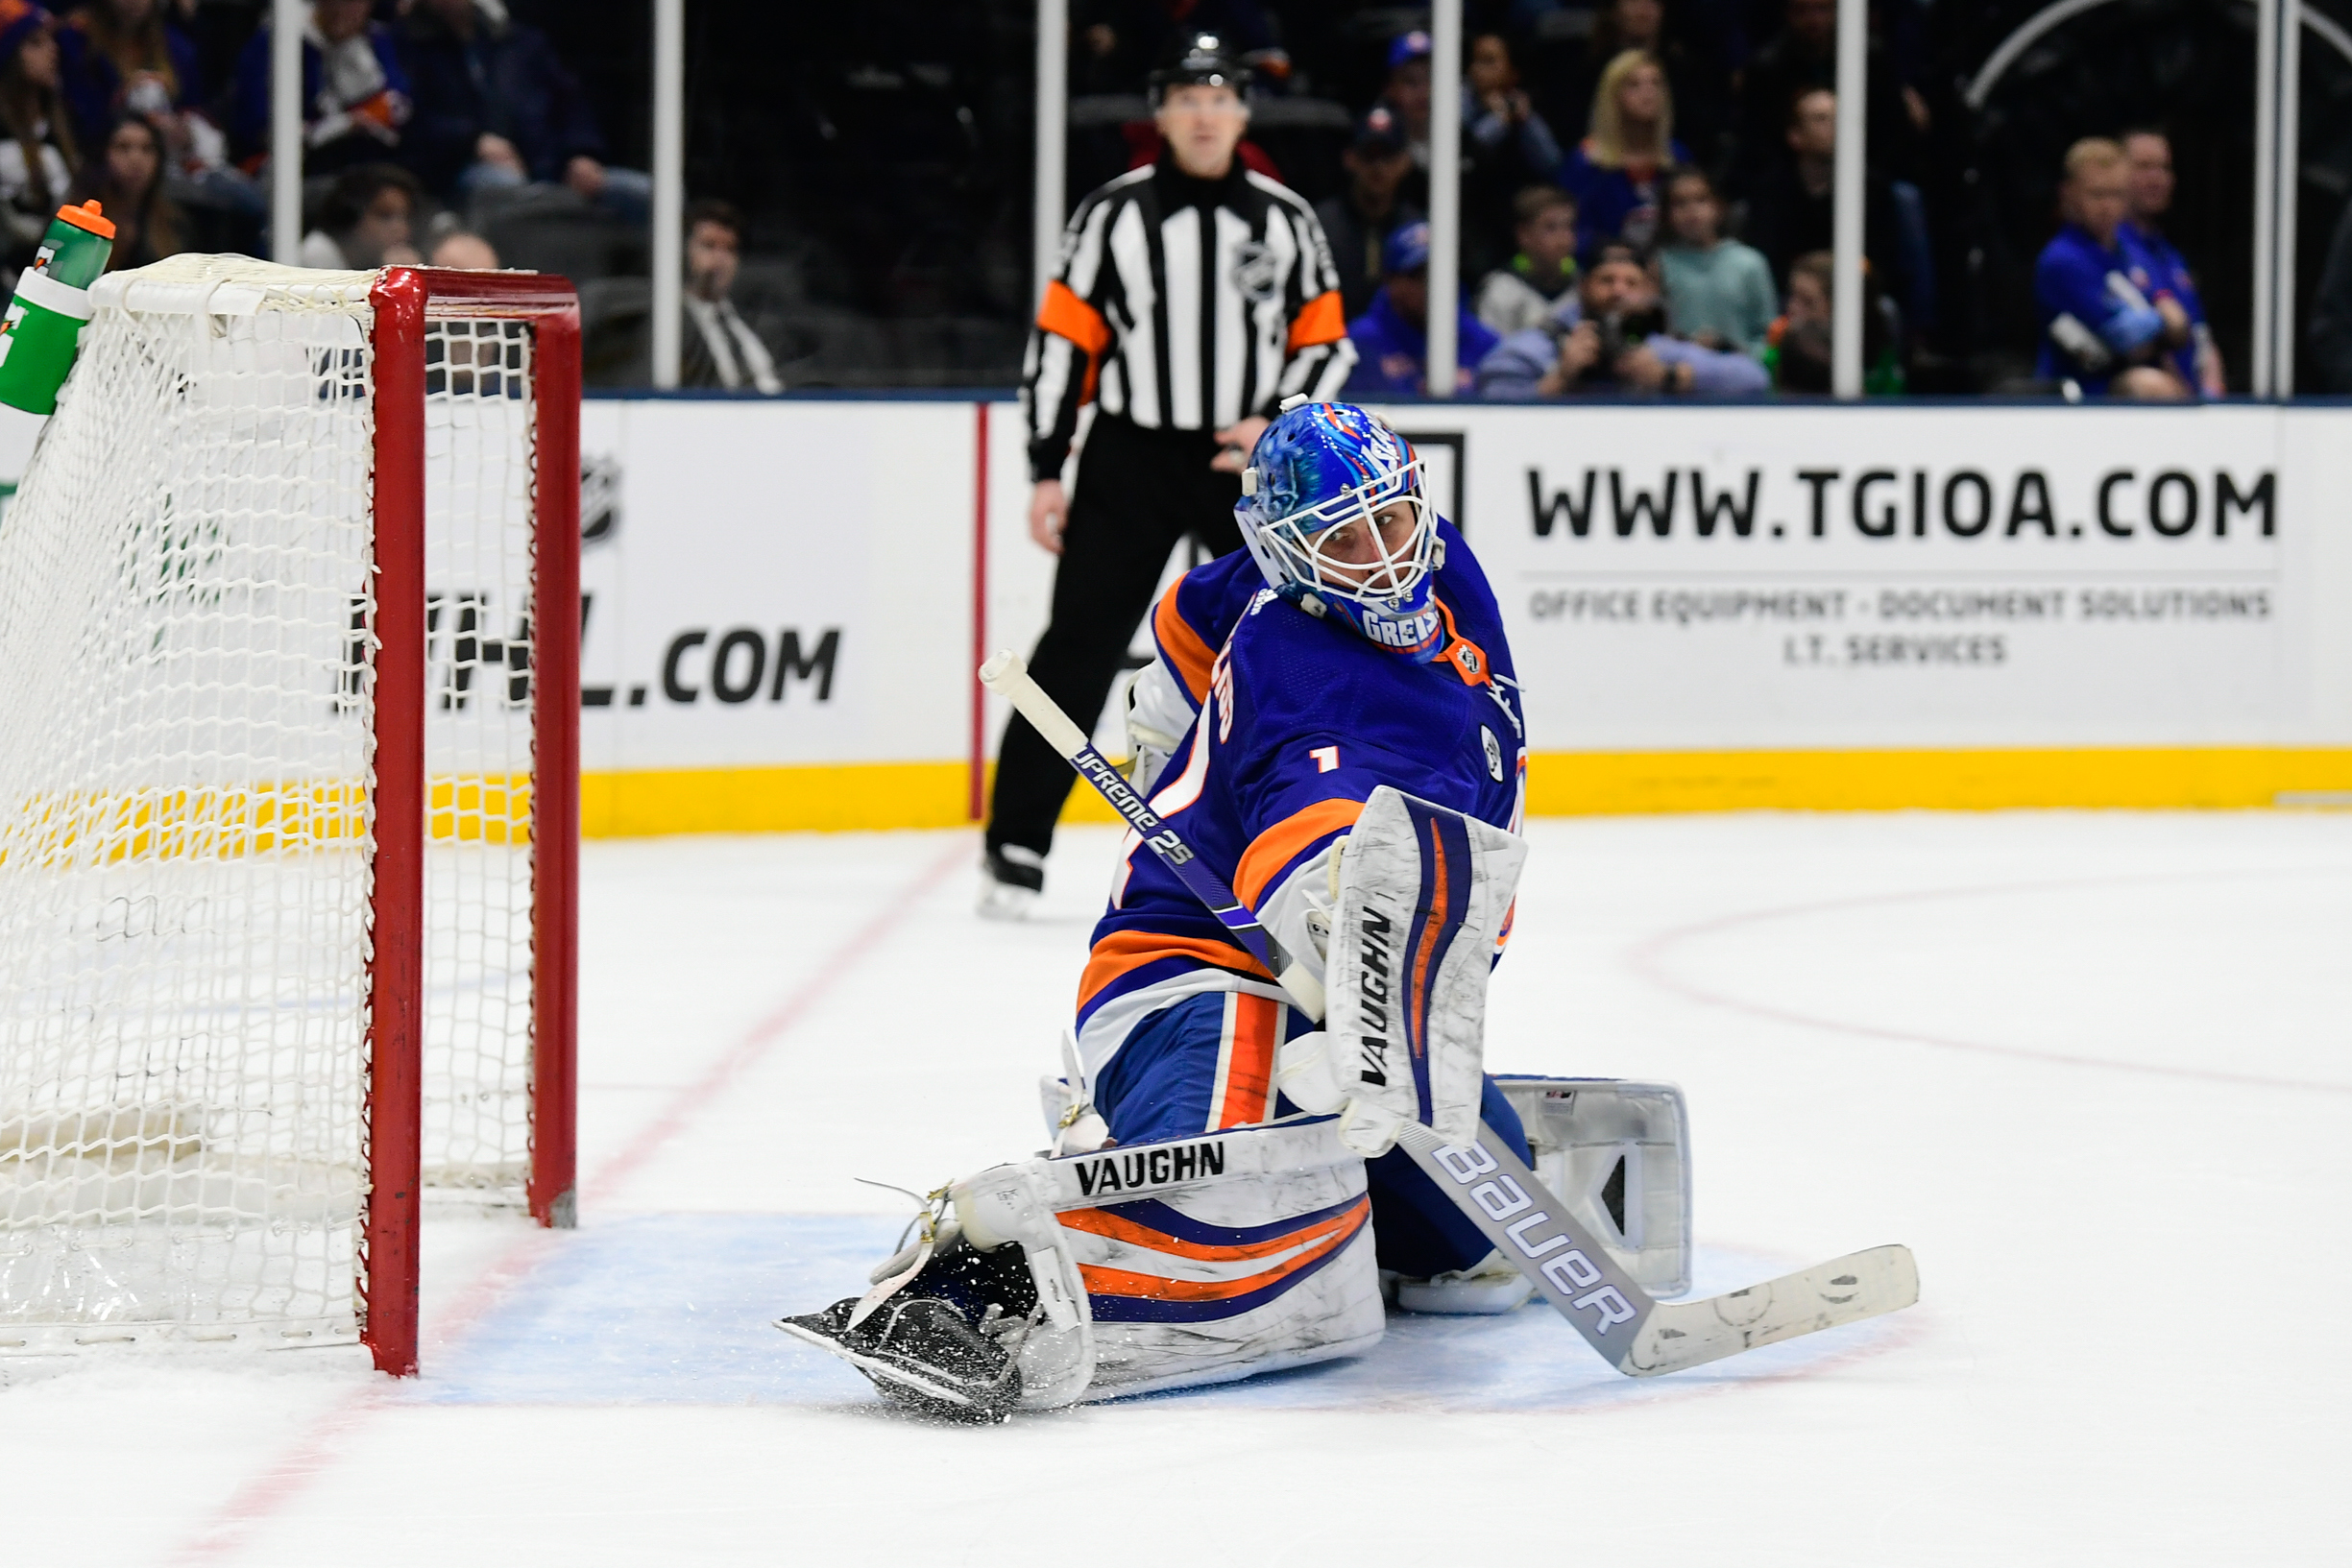 Mar 11, 2019; Uniondale, NY, USA; New York Islanders goalie Thomas Greiss (1) deflects a puck against the Columbus Blue Jackets during the third period at Nassau Veterans Memorial Coliseum. Mandatory Credit: Catalina Fragoso-USA TODAY Sports